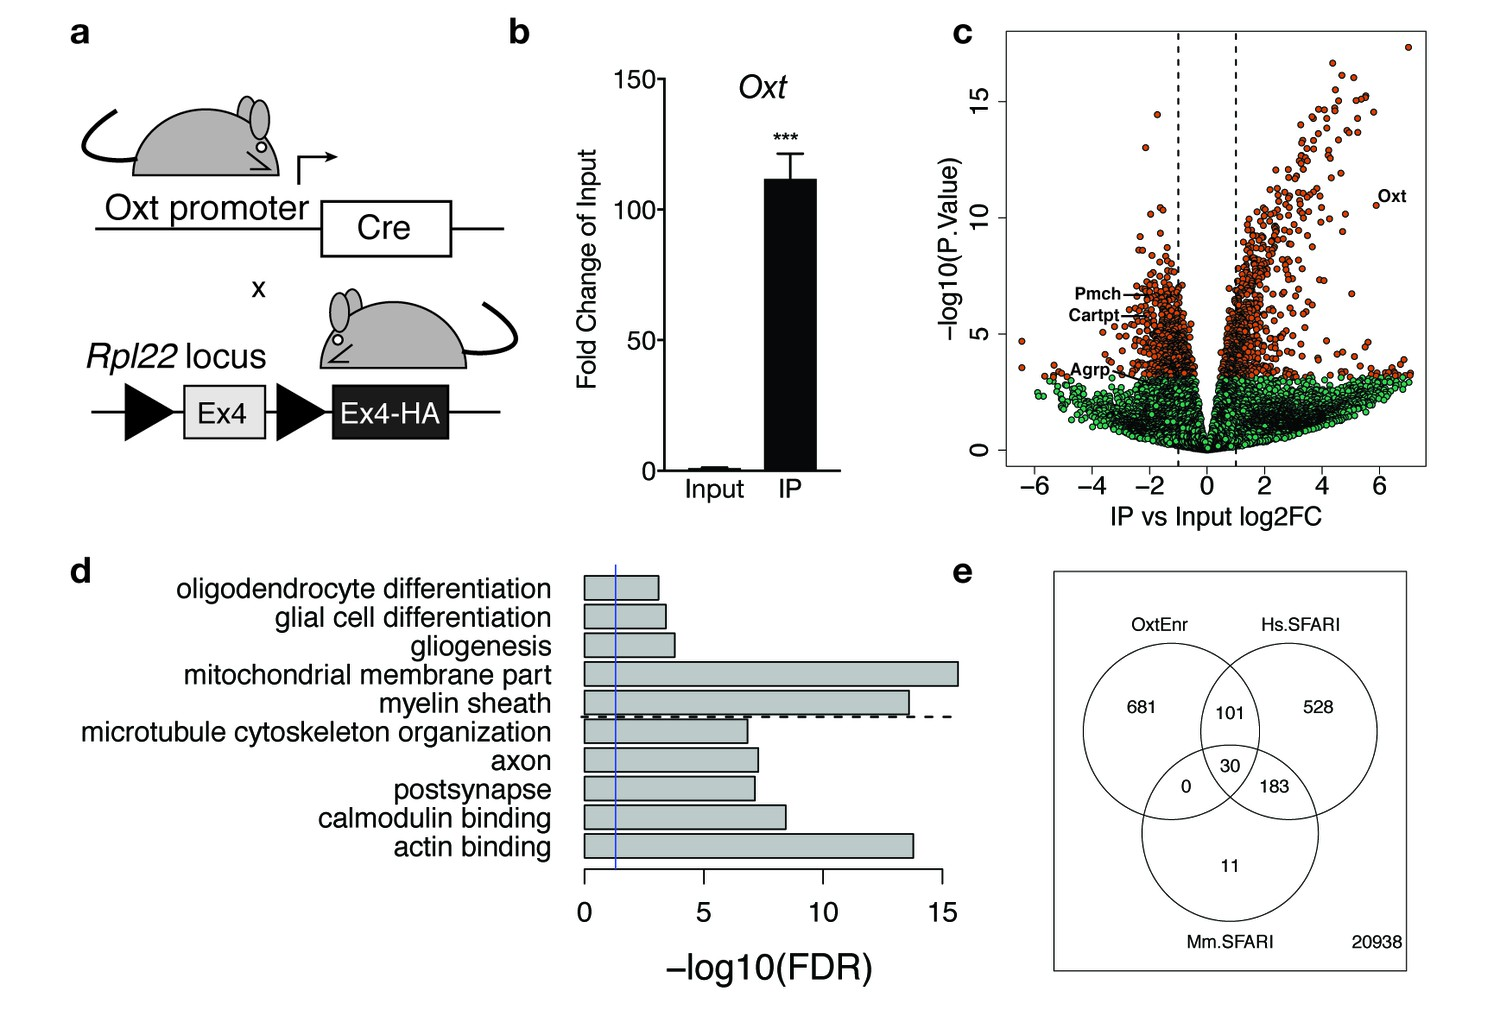 BDNF-TrkB signaling in oxytocin neurons contributes to